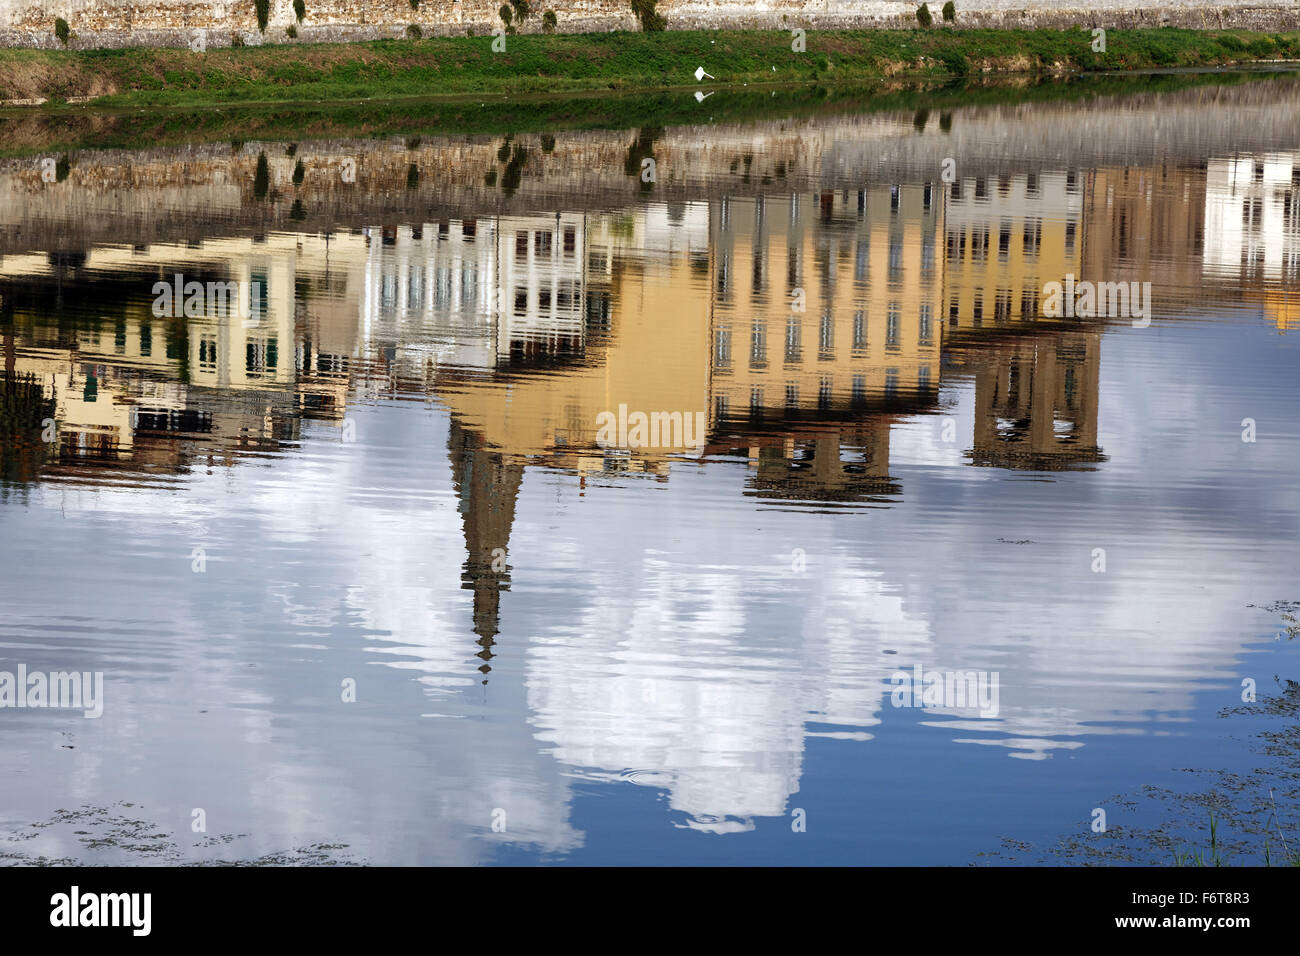 Buildings reflected in the Arno River, Florence, Italy - Stock Image